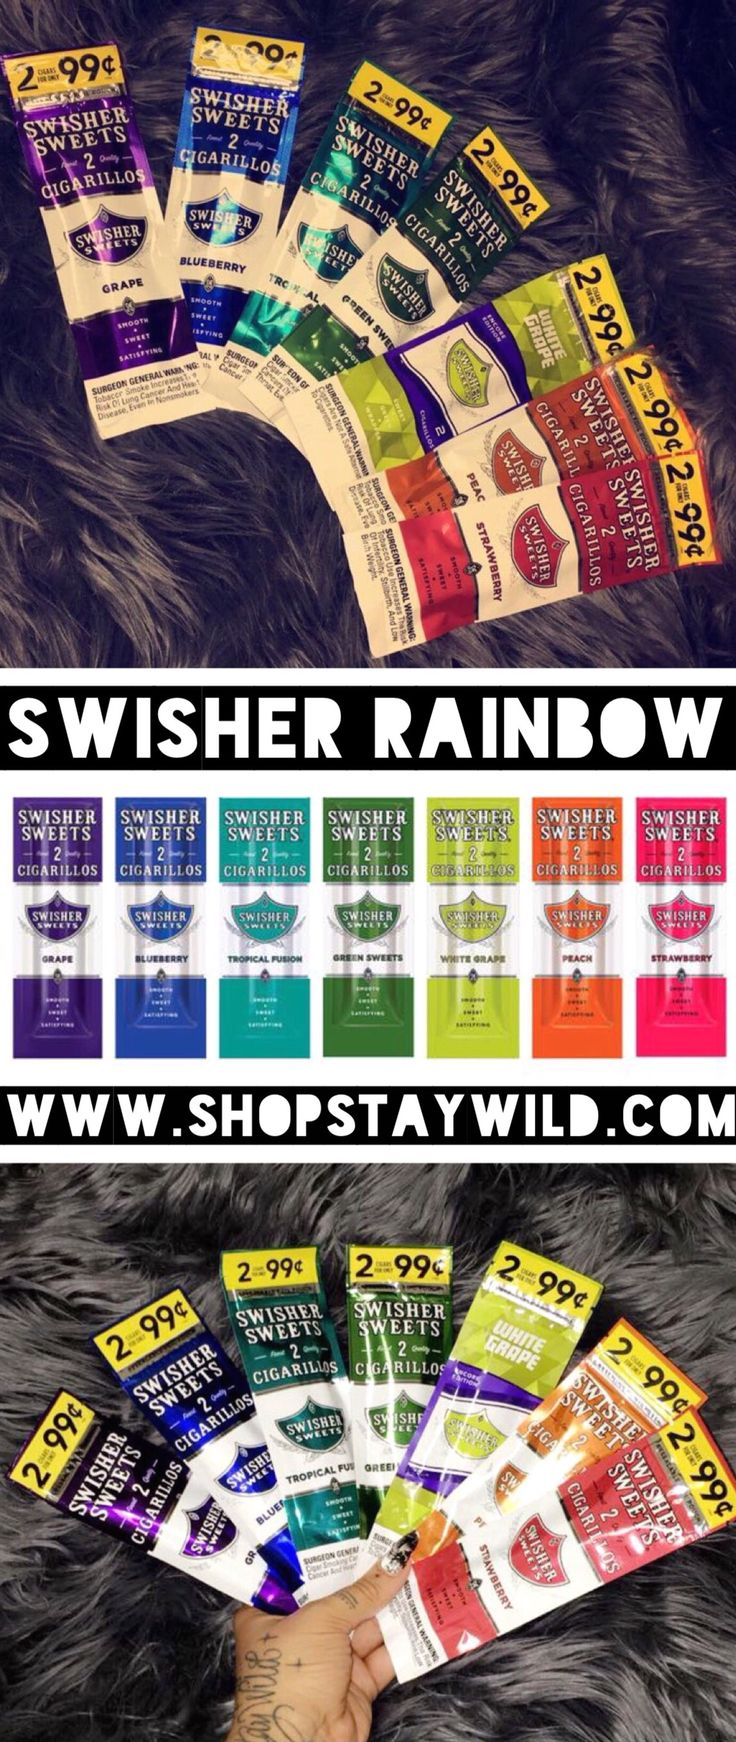 Rainbow swisher sweets blunt set from ShopStayWild.com #love #home #ideas #things #idea #marijuana #cannabis #stoned #high #cannabiscures #legalize #420 #710 #wax #shatter #glass #vape #style #ideas #ganja #kush #cbd #bath #smoke #bongbeauties #alien #ganjagirls #potprincess #bakedbarbie #stonergirl #stoner problems #weed humor #funny #cool